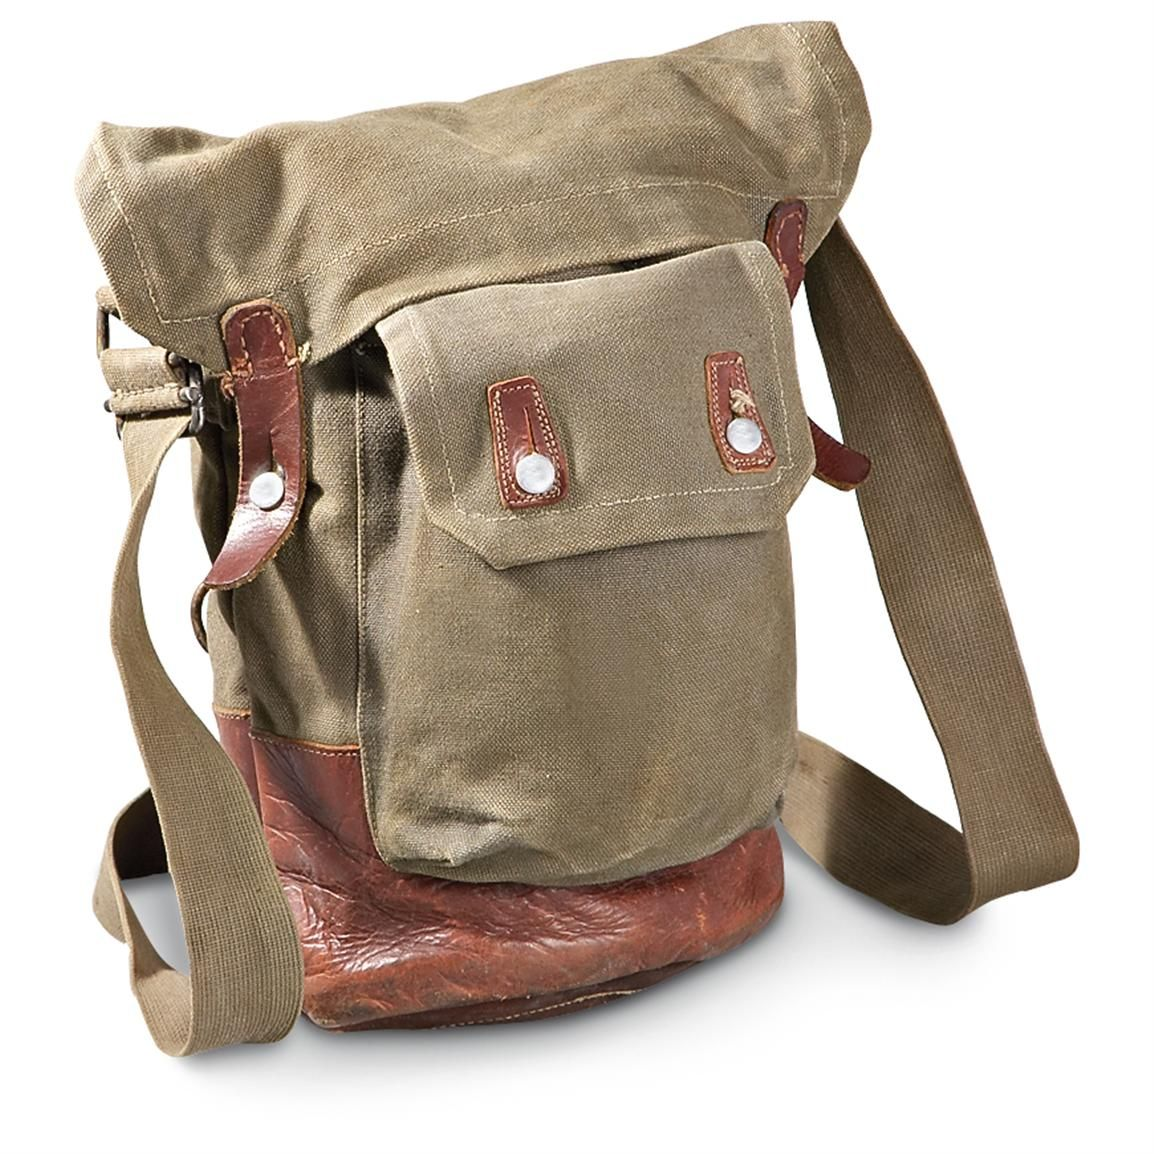 Used Swedish Military Surplus Vintage Gas Mask Bag Gray Brown 176501 Field Gear At Sportsman S Guide